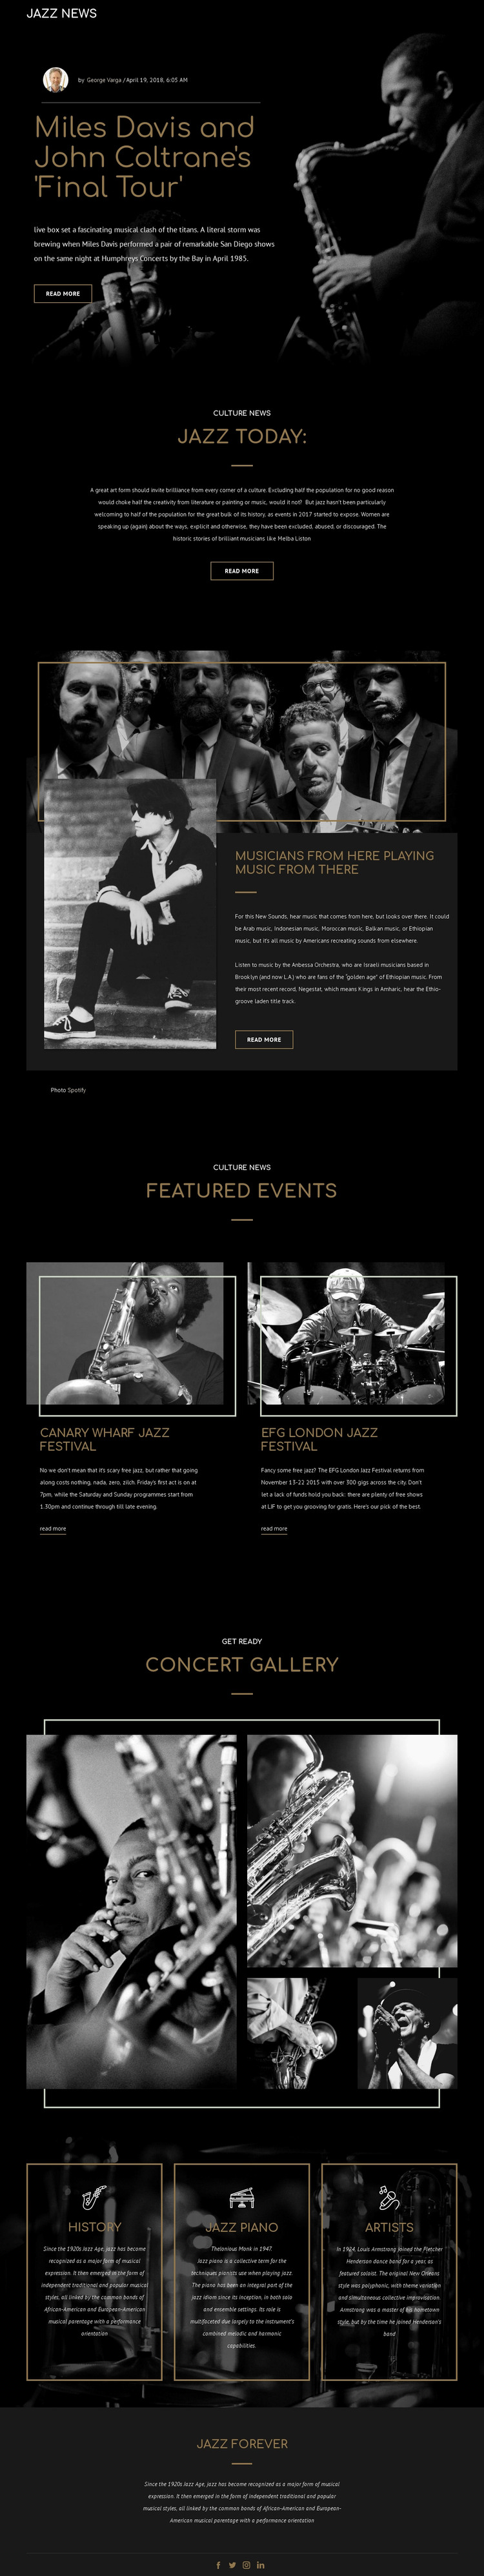 Legengs of jazz music WordPress Theme